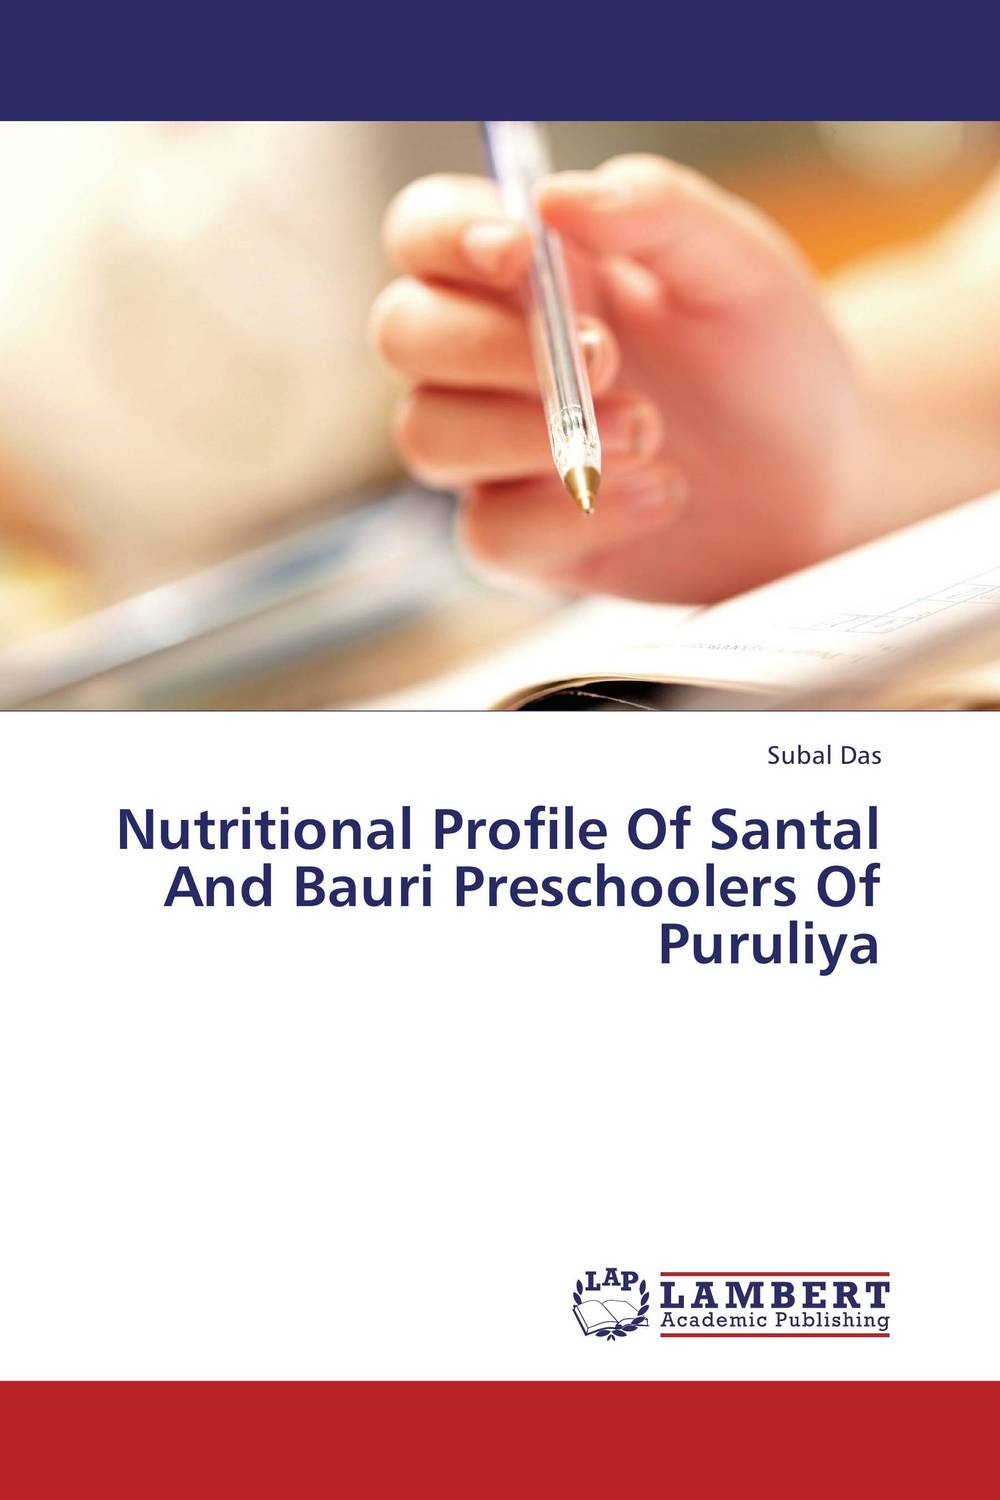 Nutritional Profile Of Santal And Bauri Preschoolers Of Puruliya